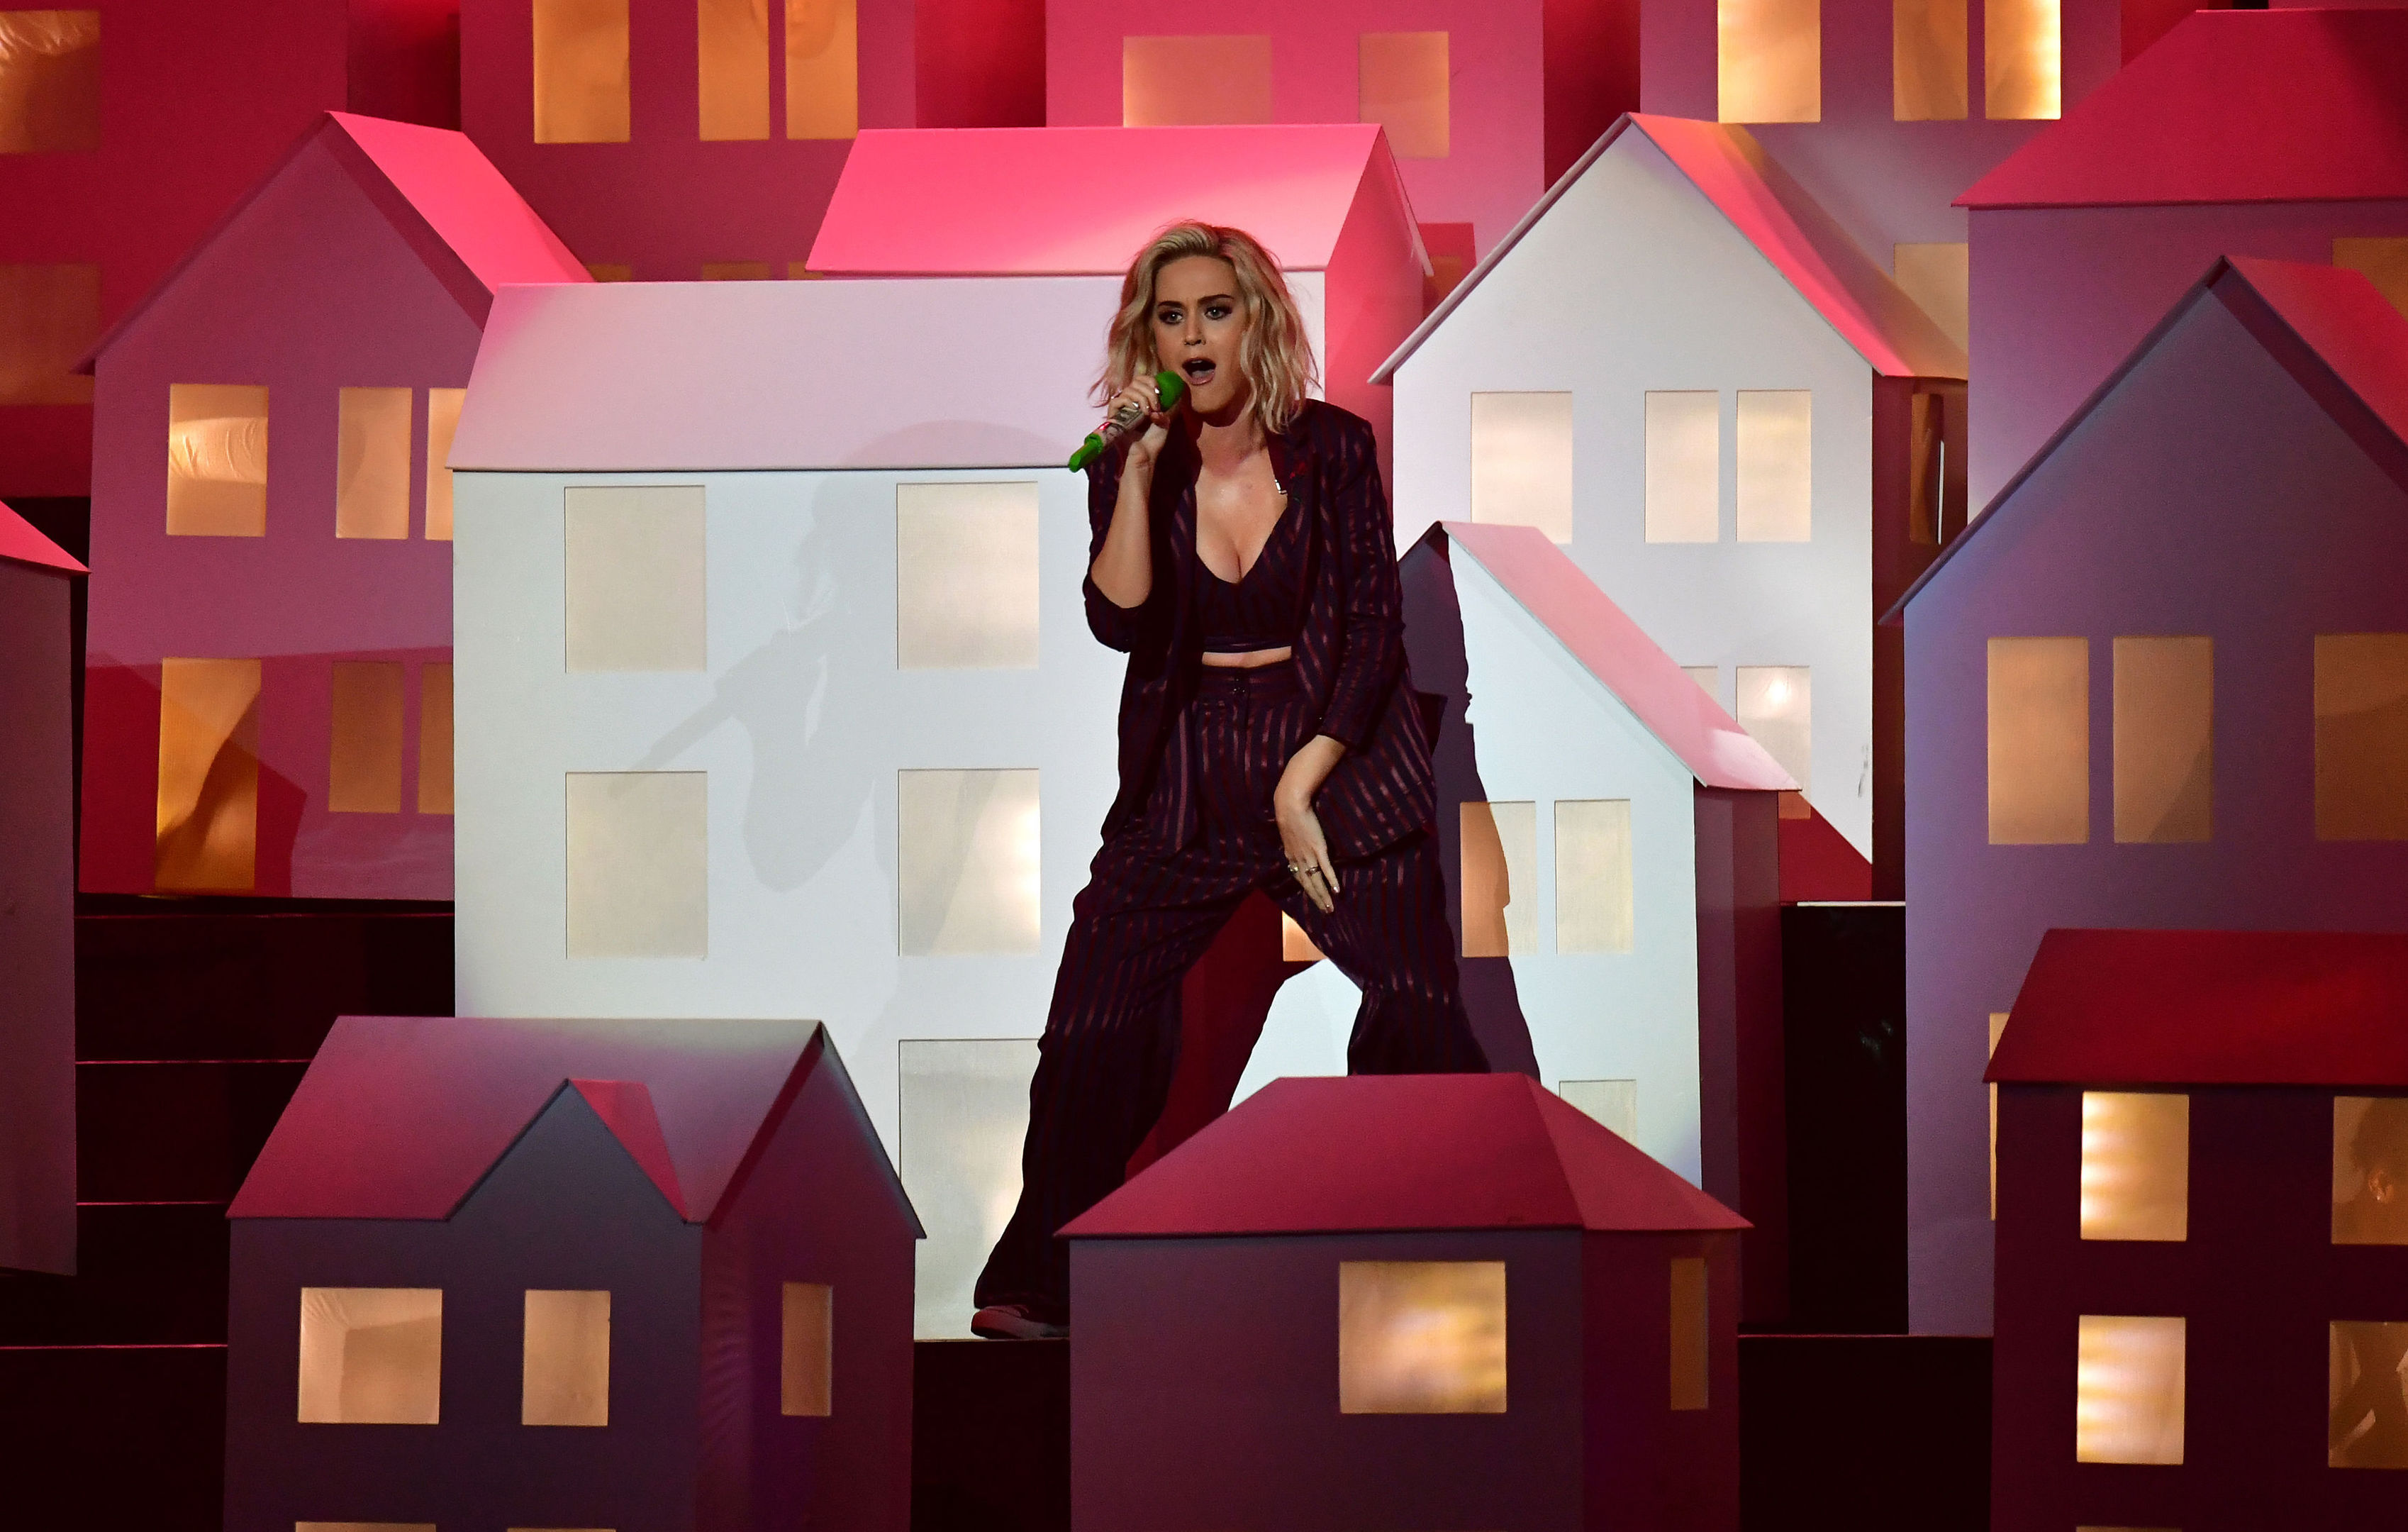 Katy Perry performing on stage at the Brit Awards